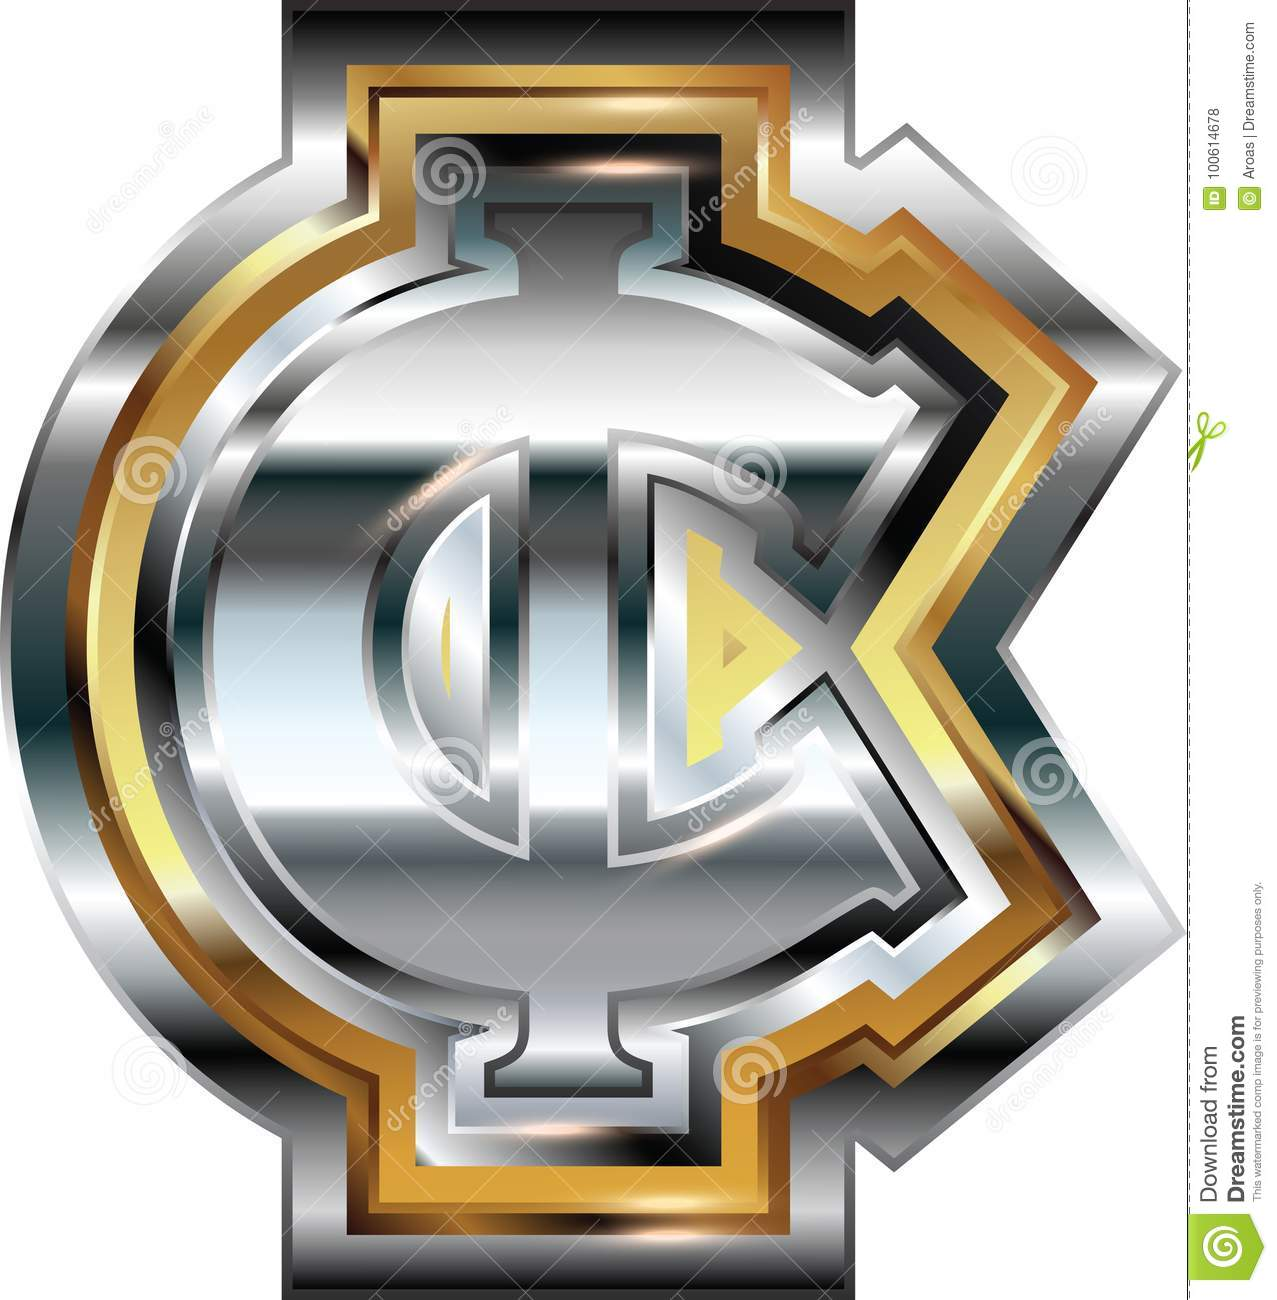 Fancy Cent Symbol Stock Vector Illustration Of Currency 100614678